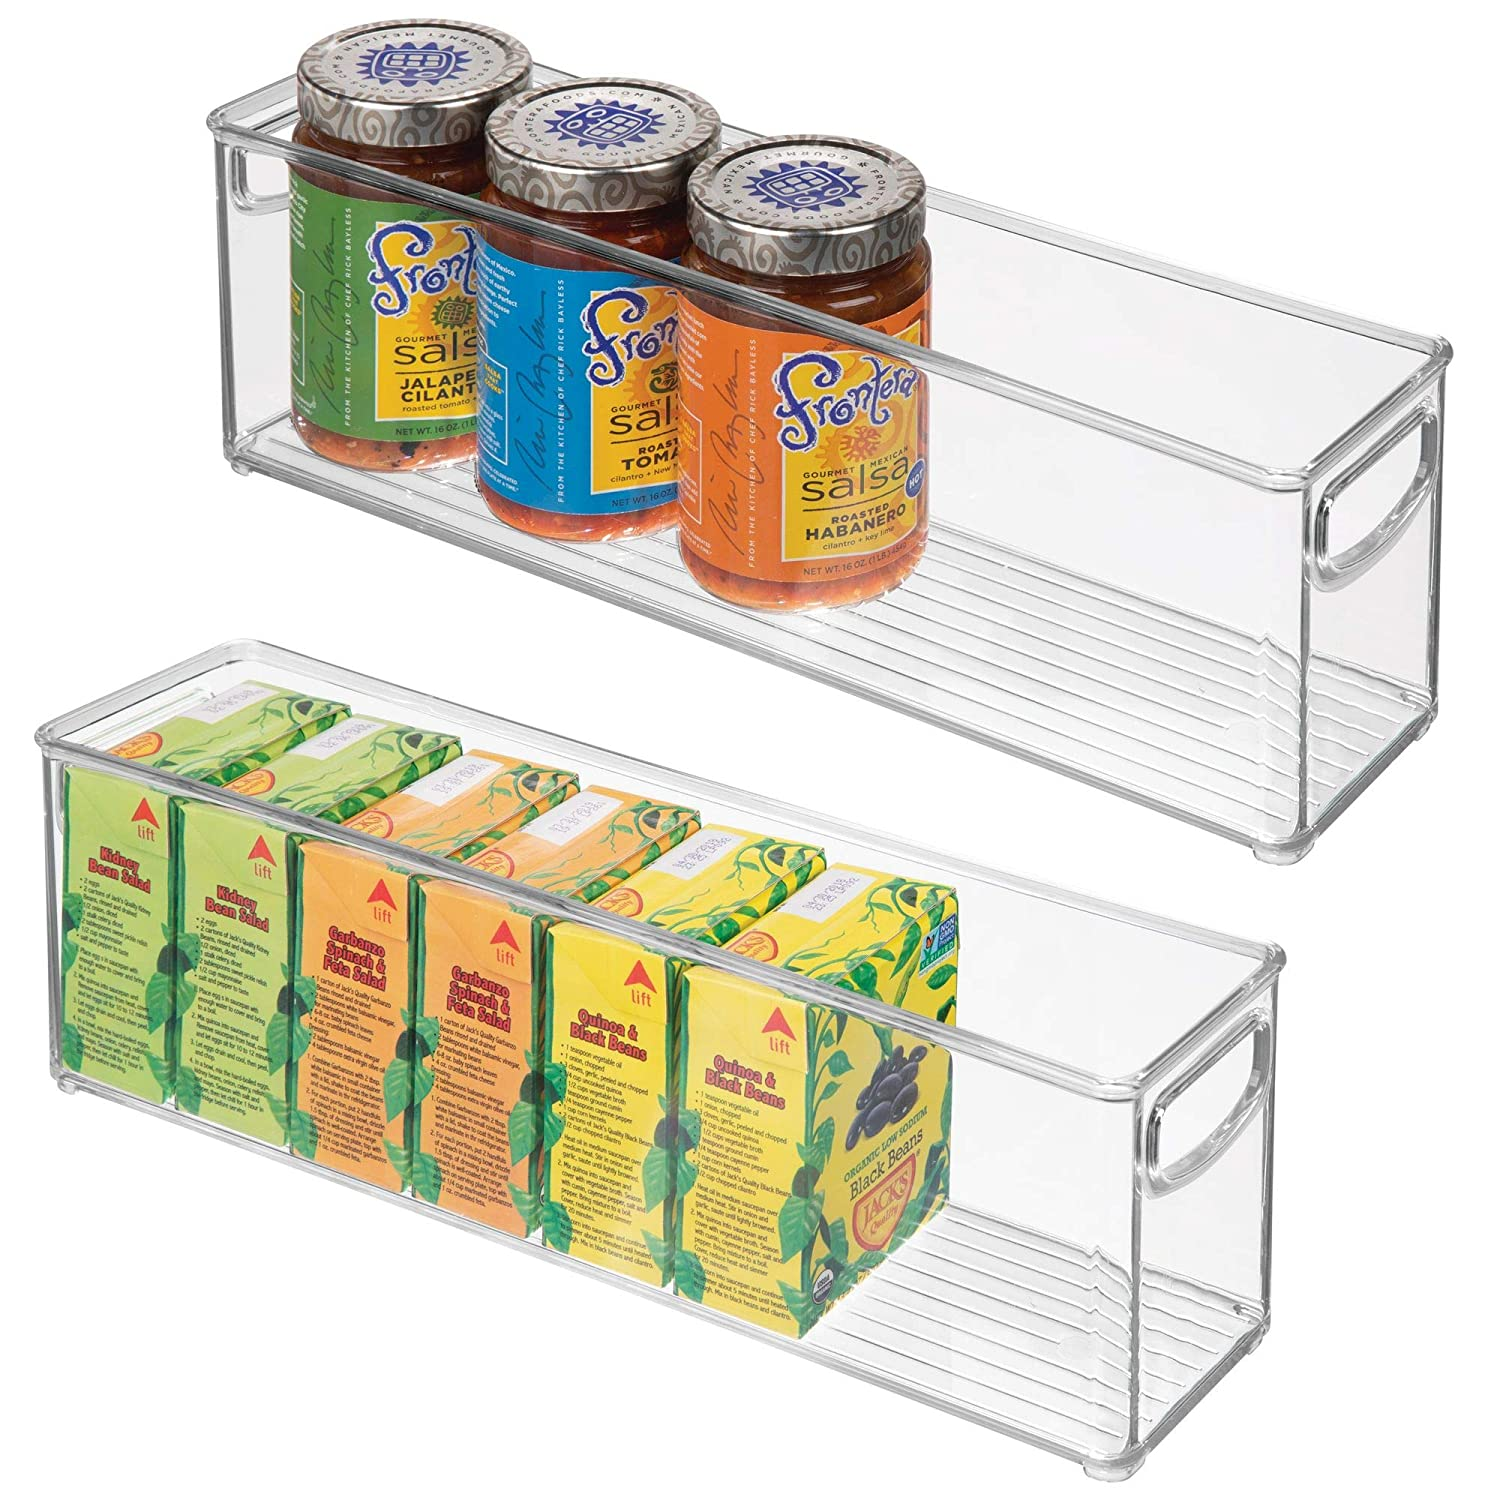 "mDesign Plastic Stackable Kitchen Pantry Cabinet, Refrigerator or Freezer Food Storage Bins with Handles - Organizer for Fruit, Yogurt, Snacks, Pasta - BPA Free, 16"" Long, 2 Pack - Clear"